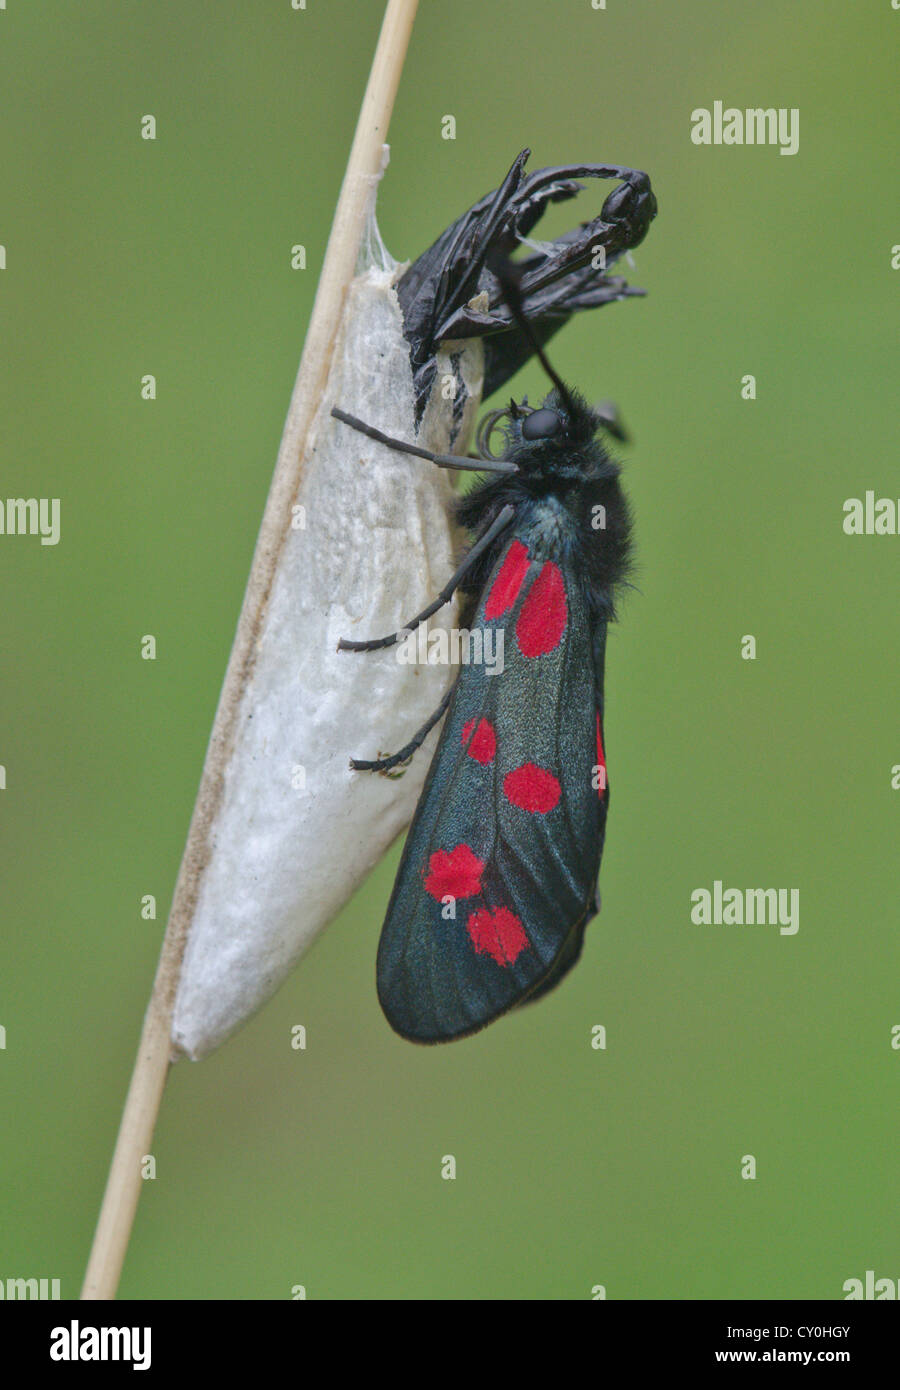 Newly Emerged Six-spot Burnet Moth with Cocoon and Pupal Case - Stock Image